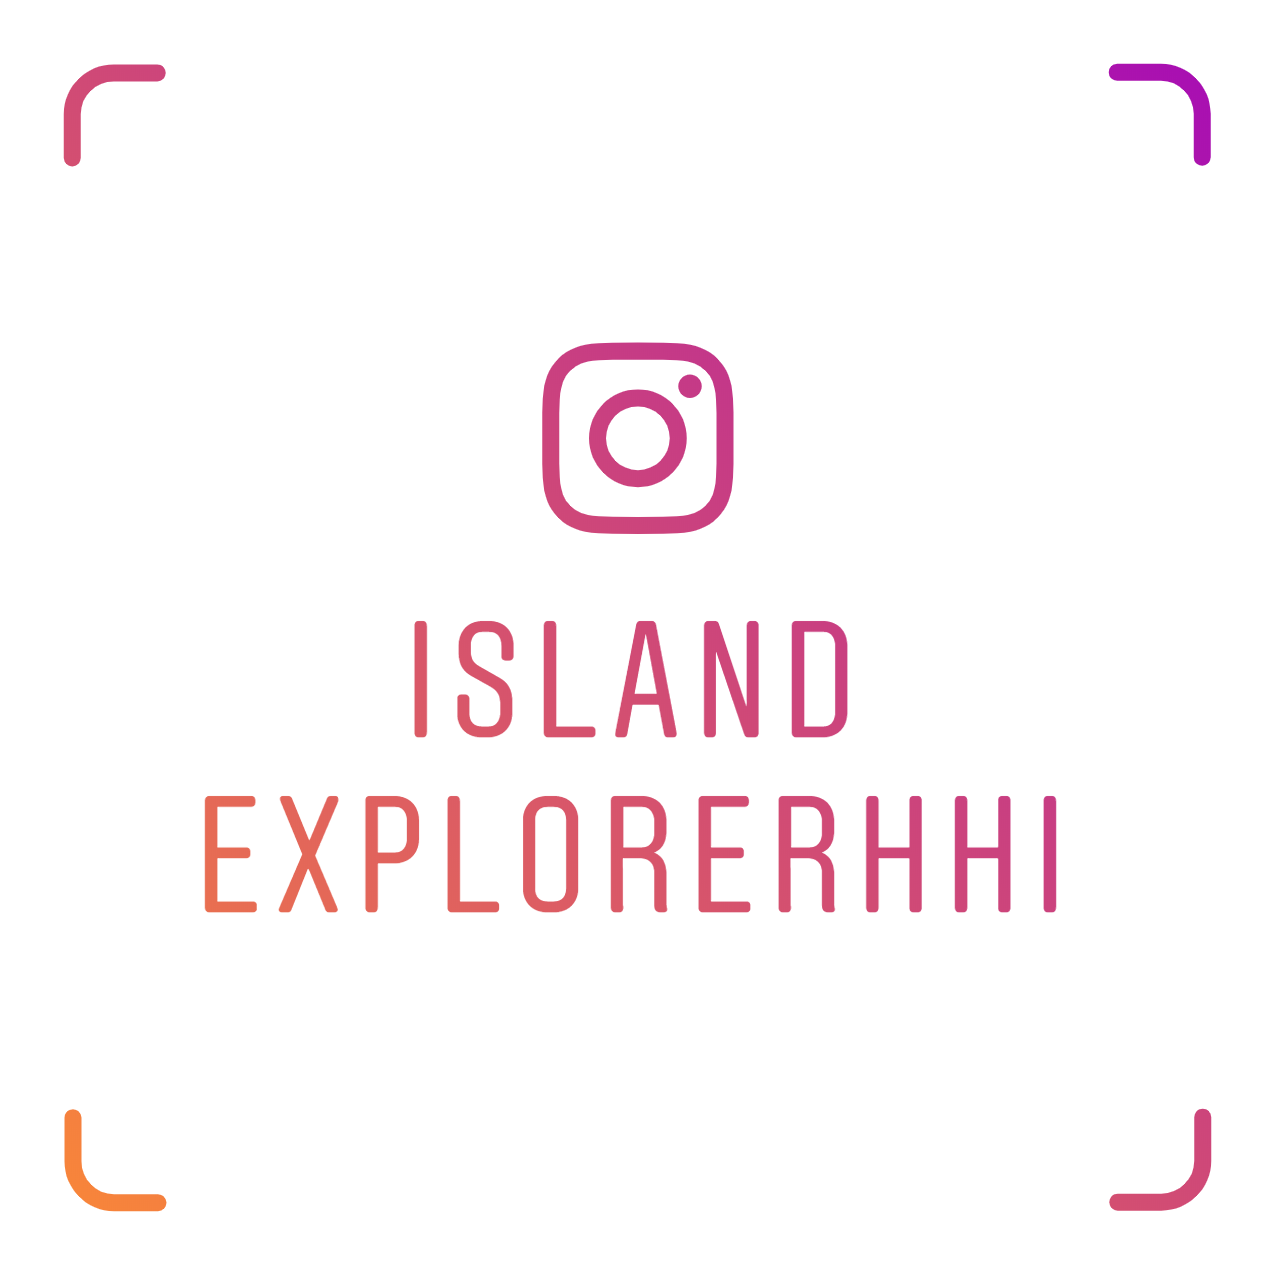 Island Explorer On Instagram